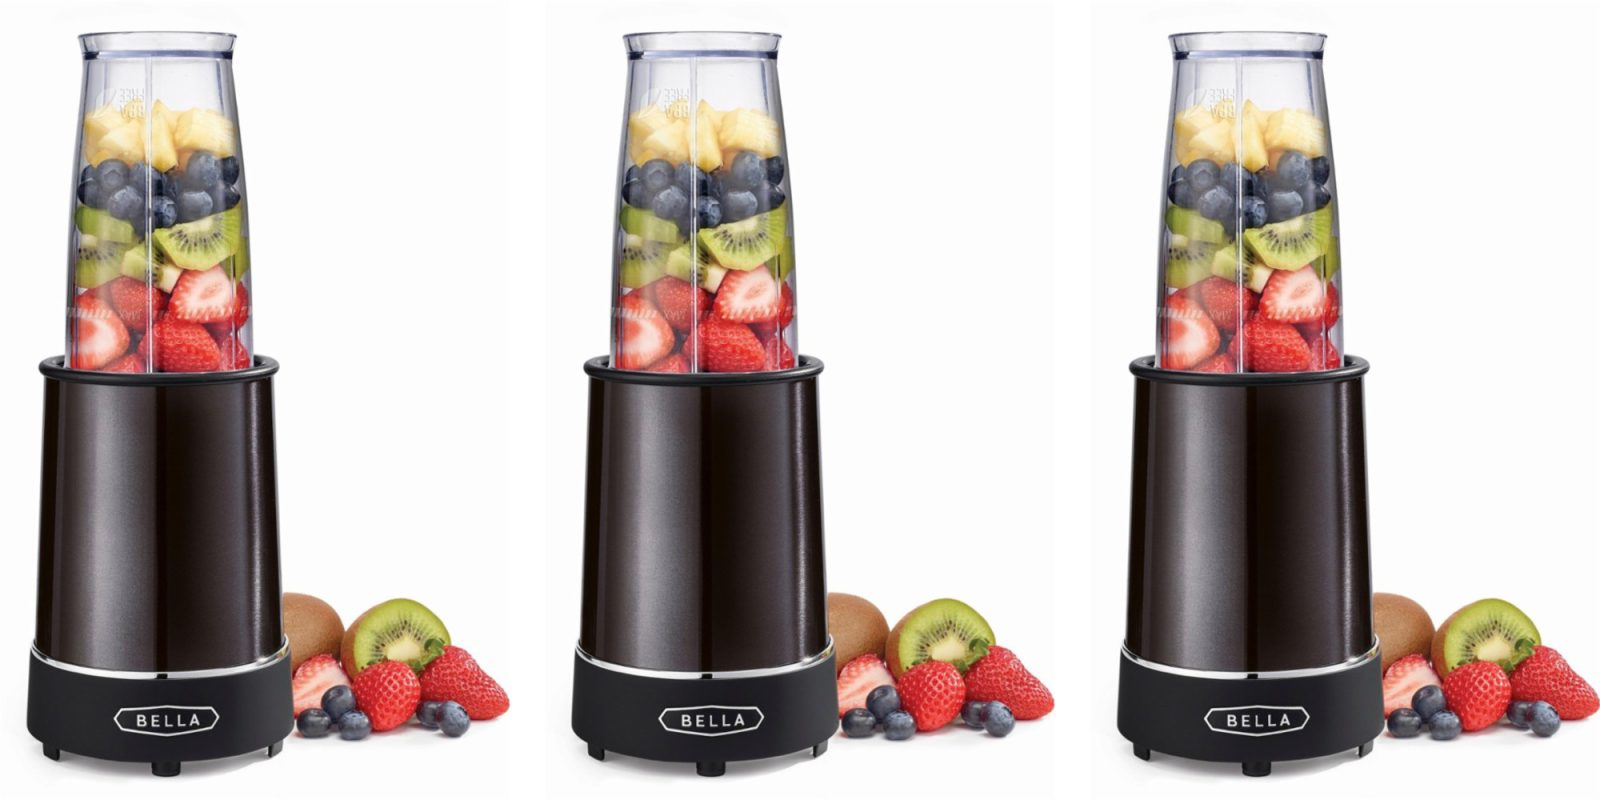 Bella\'s personal Rocket Blender is just $10 at Best Buy for ...